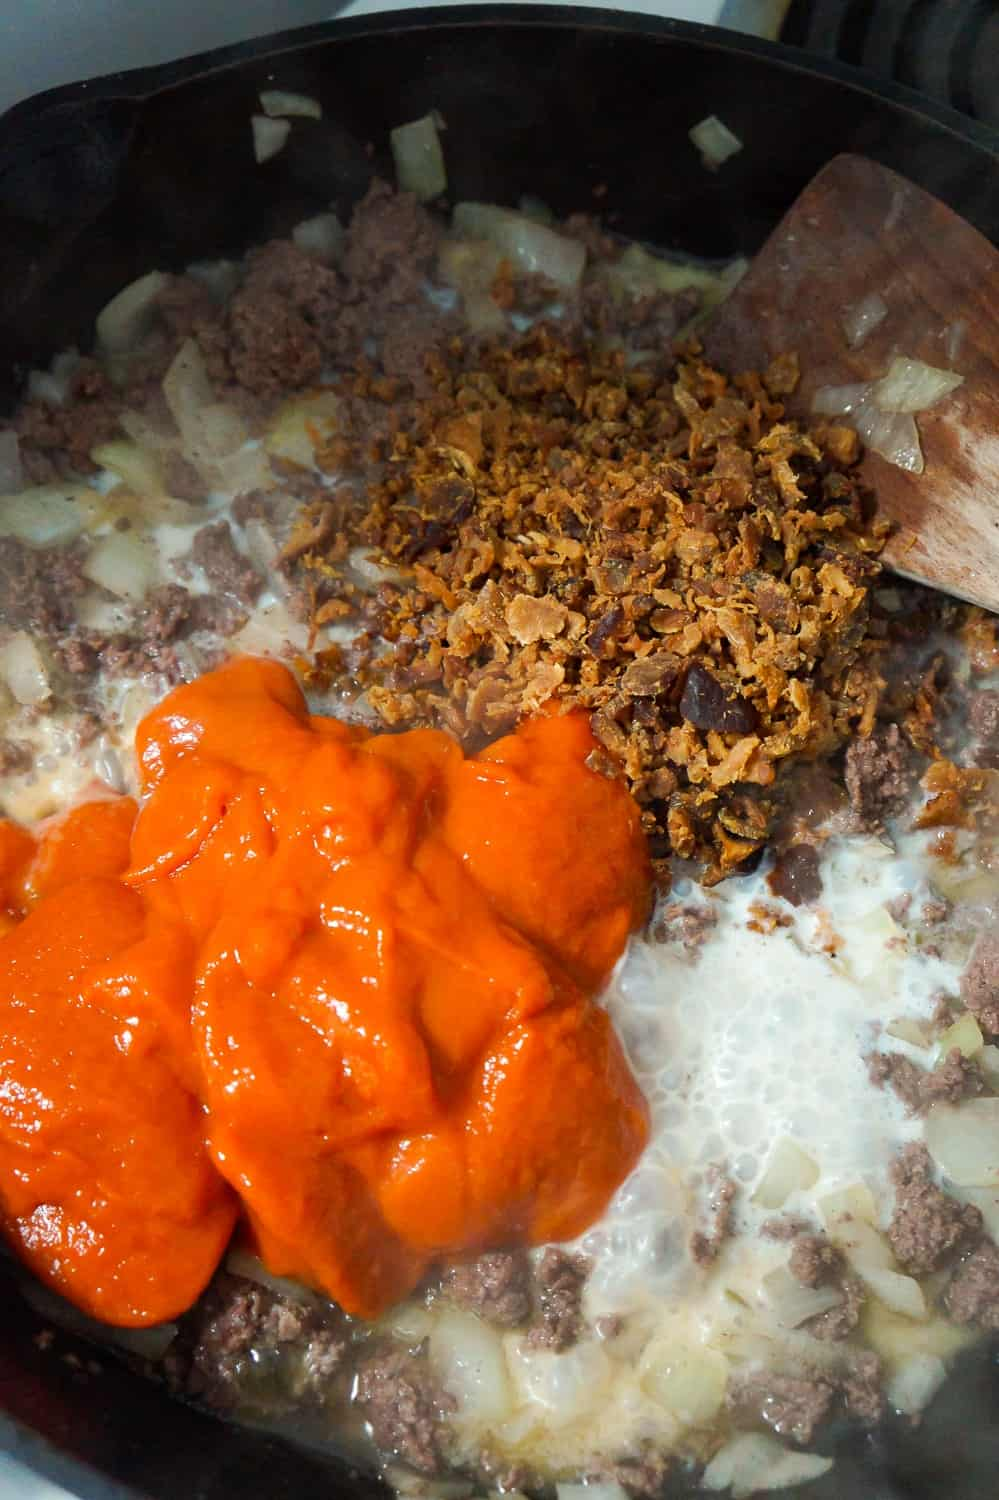 condensed tomato soup, milk and real bacon bits added to cooked ground beef in a frying pan